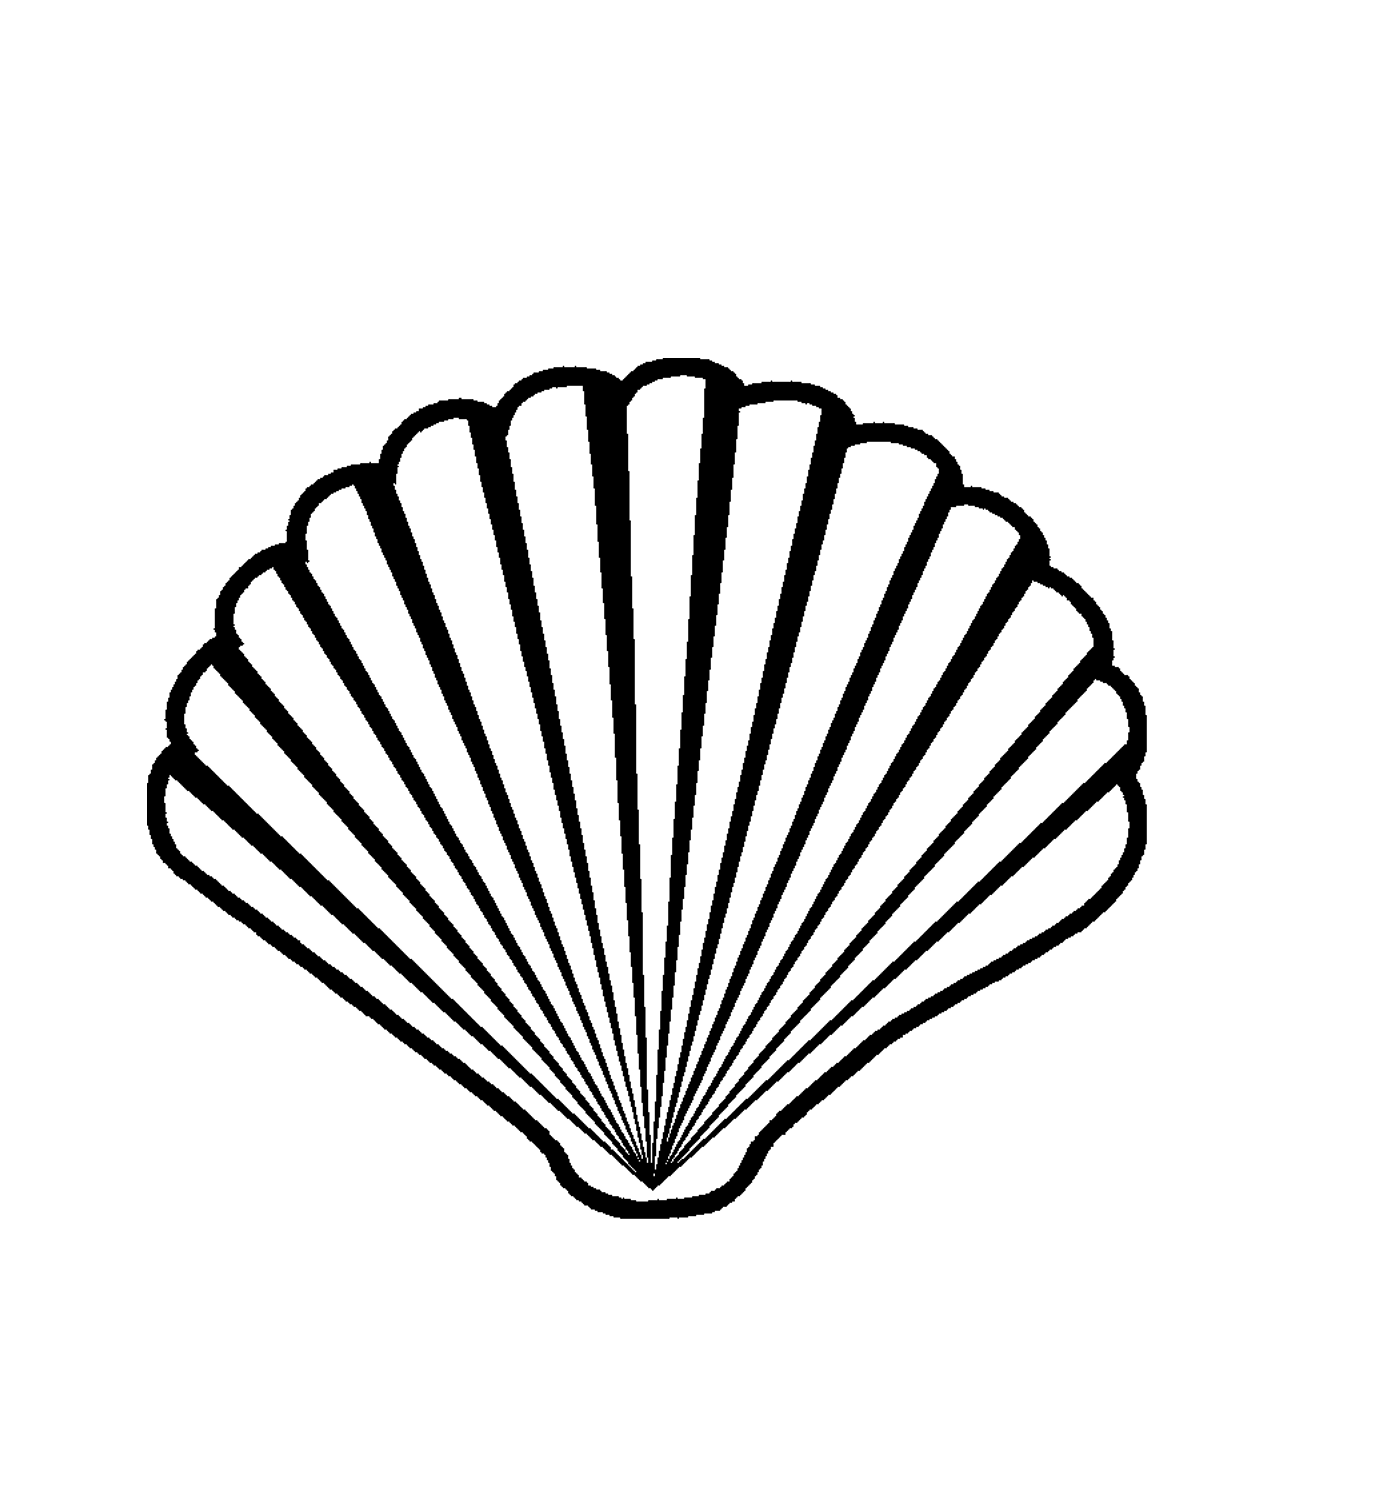 Shell Clipart Black And White 5 Clipart Station